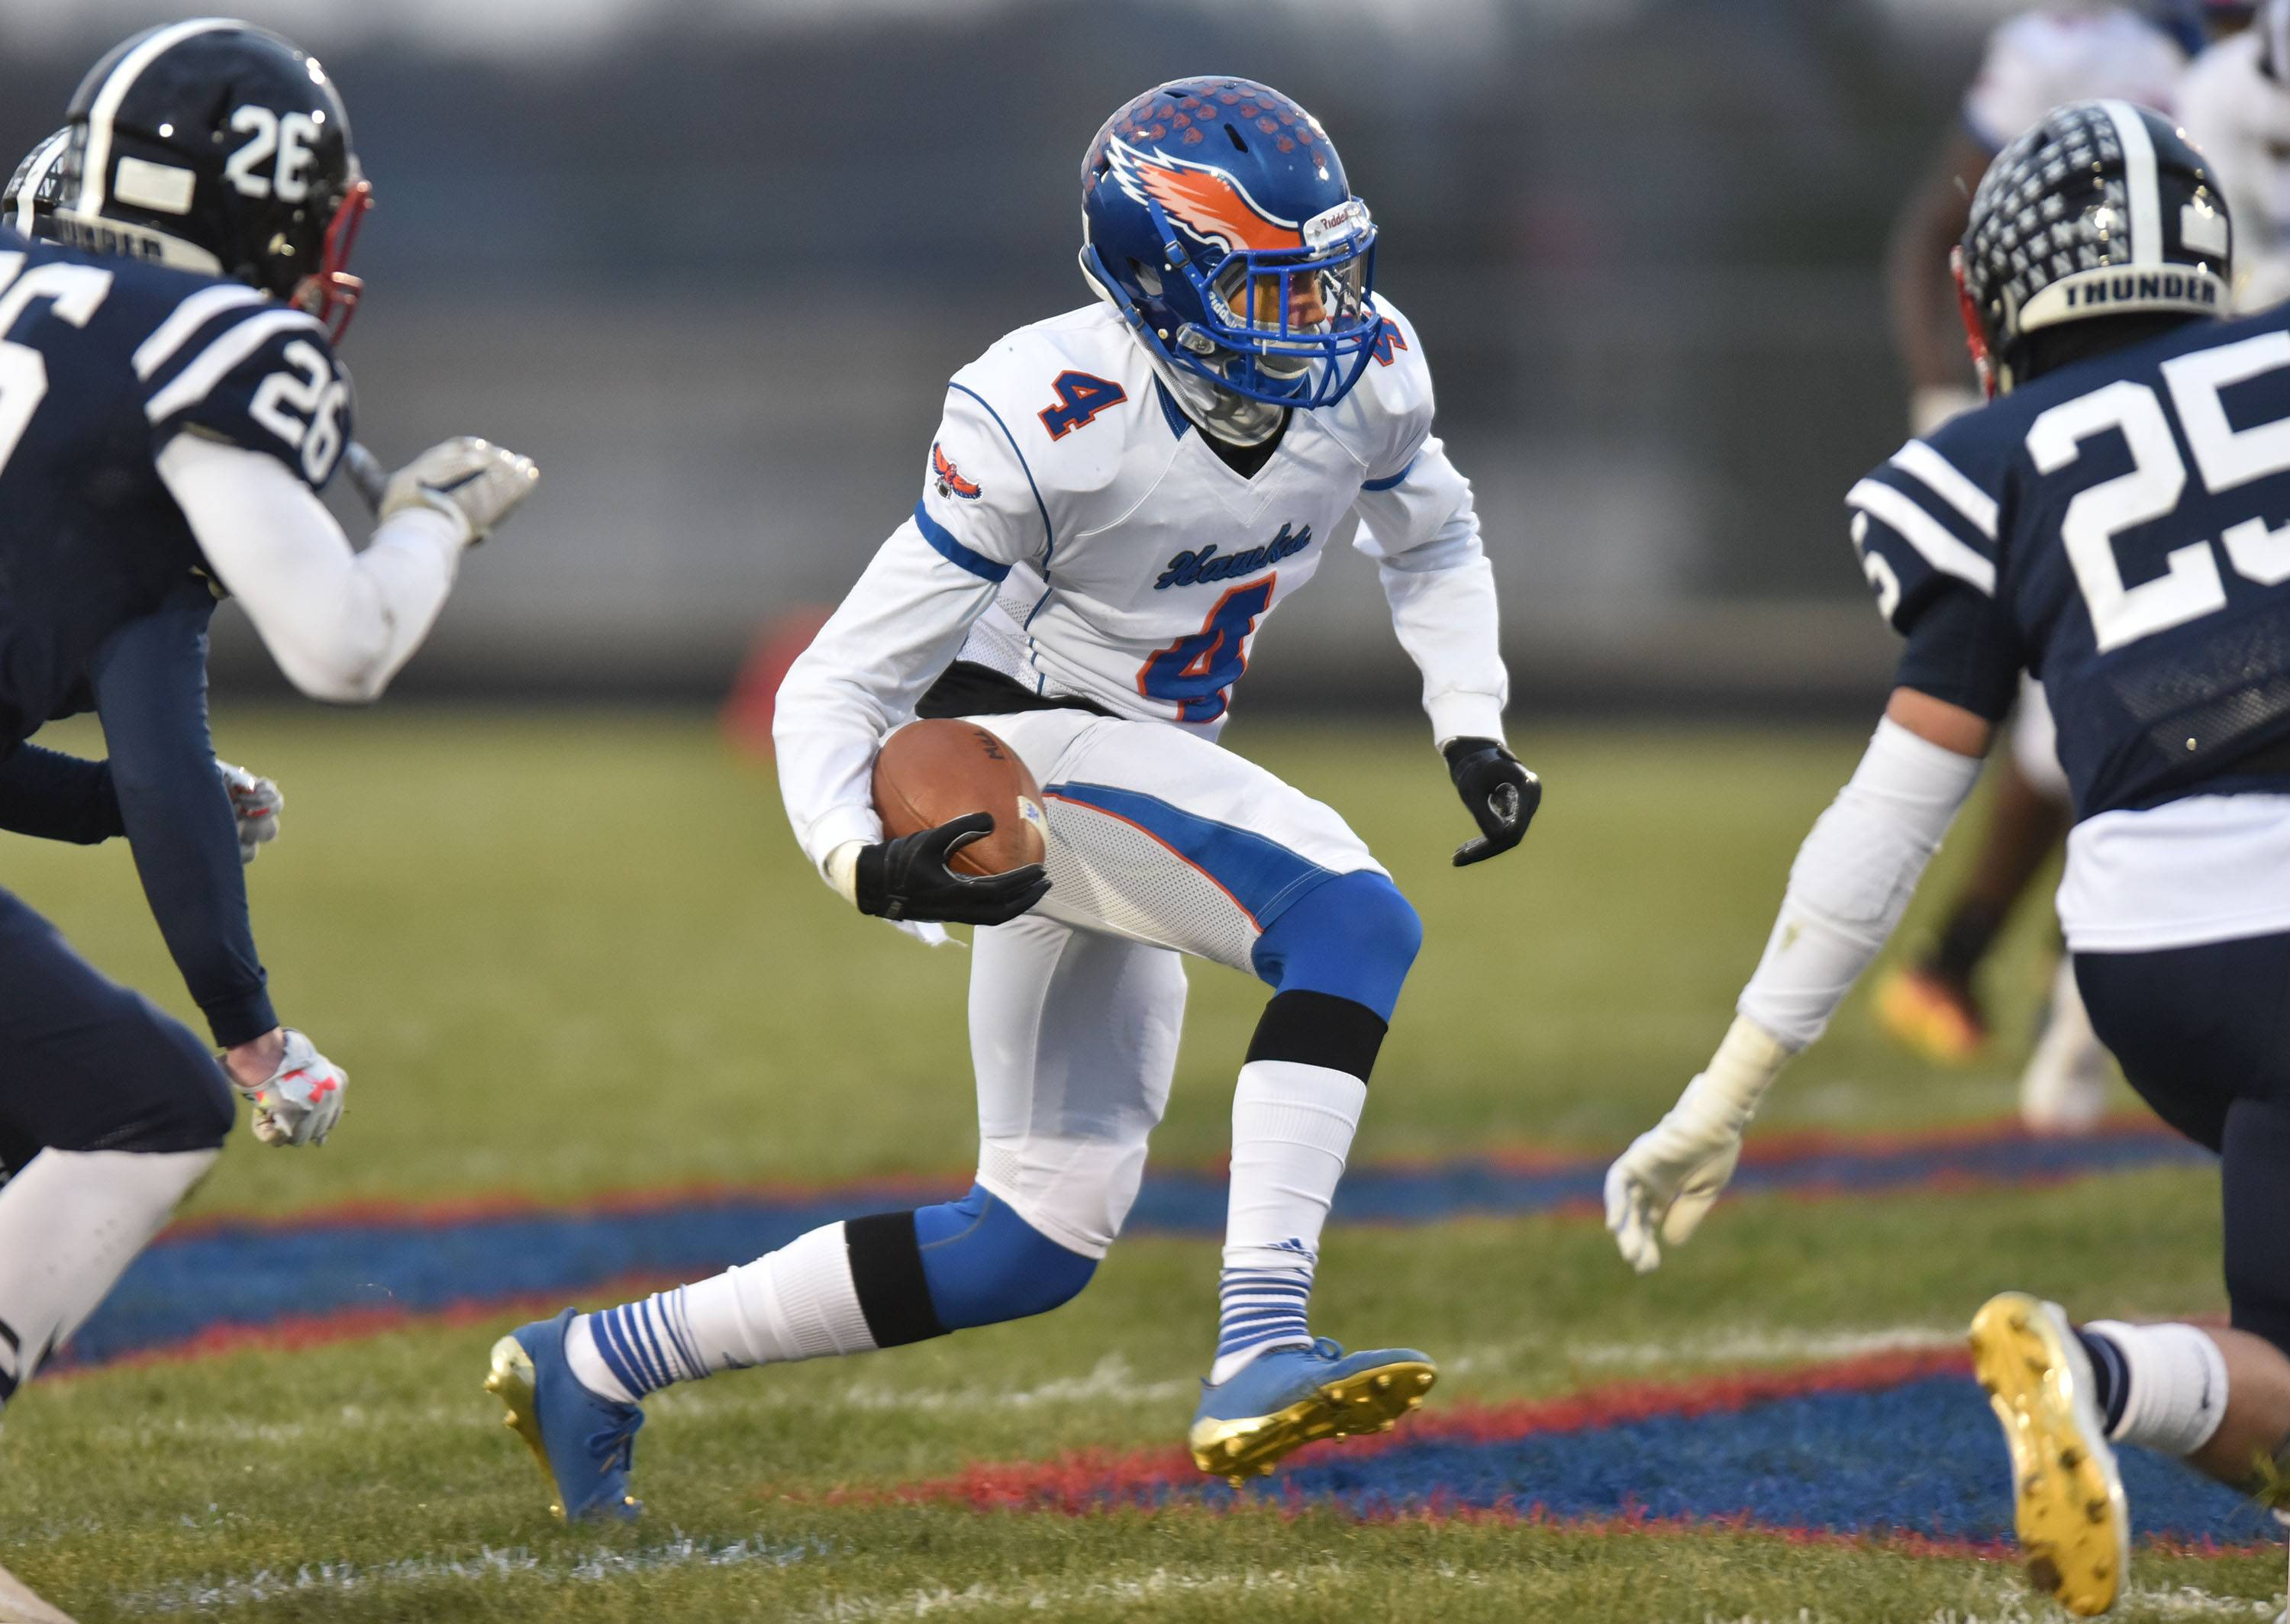 Hoffman Estates' Jayvon Blissett makes a move as he carries the ball against Belvidere North on Saturday in Class 6A state quarterfinal action in Belvidere.